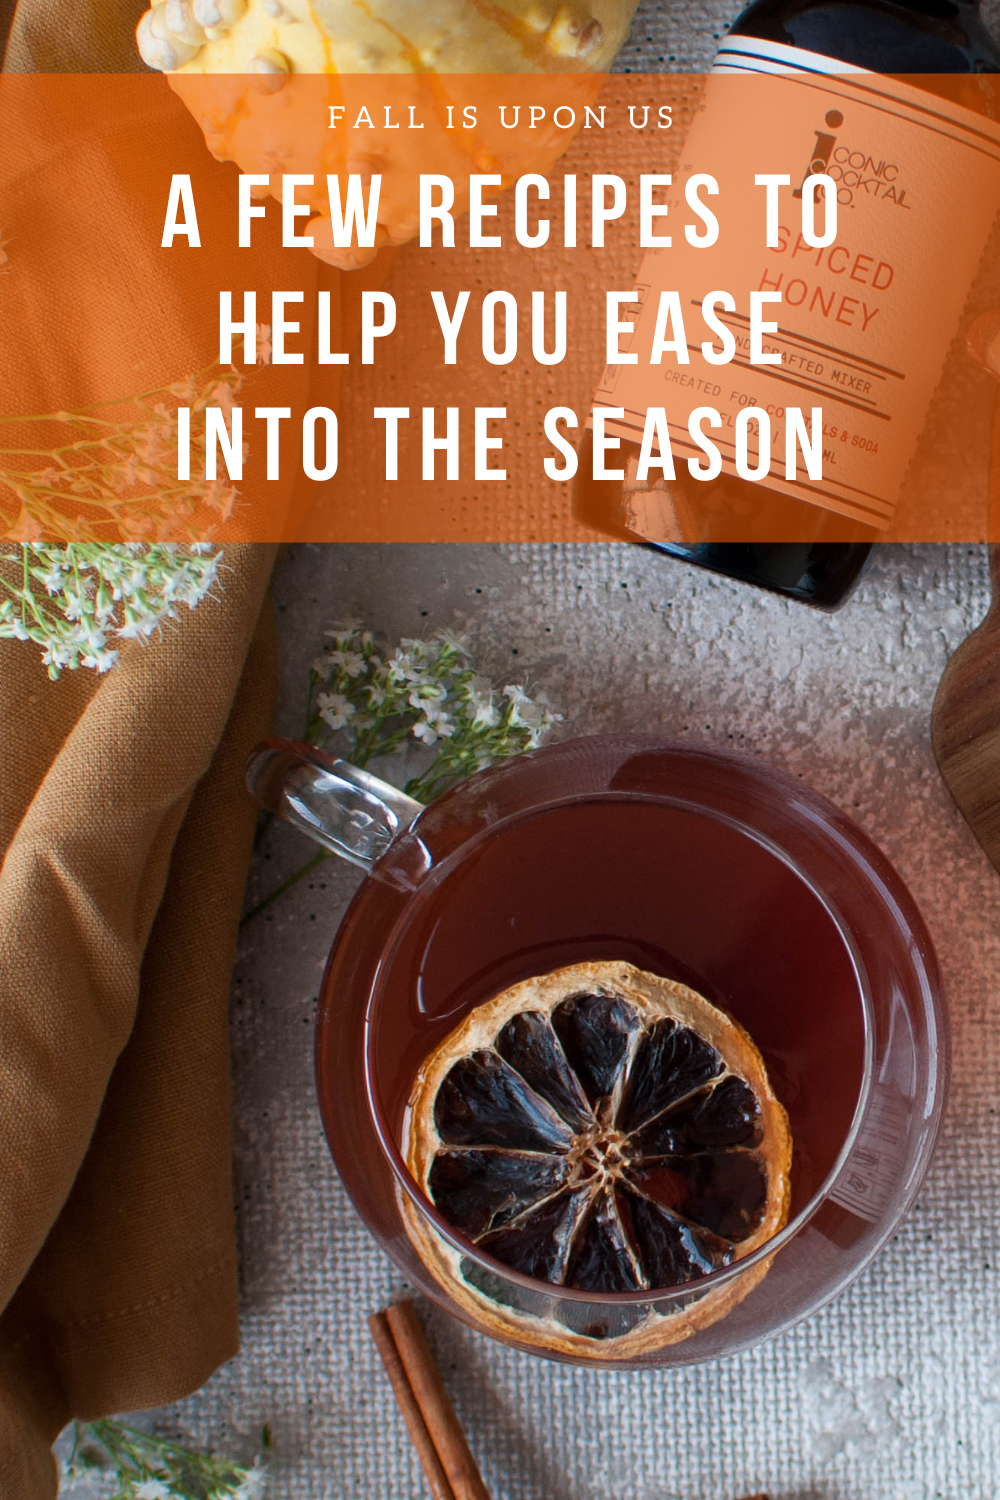 A few recipes to help you ease into the sesaon